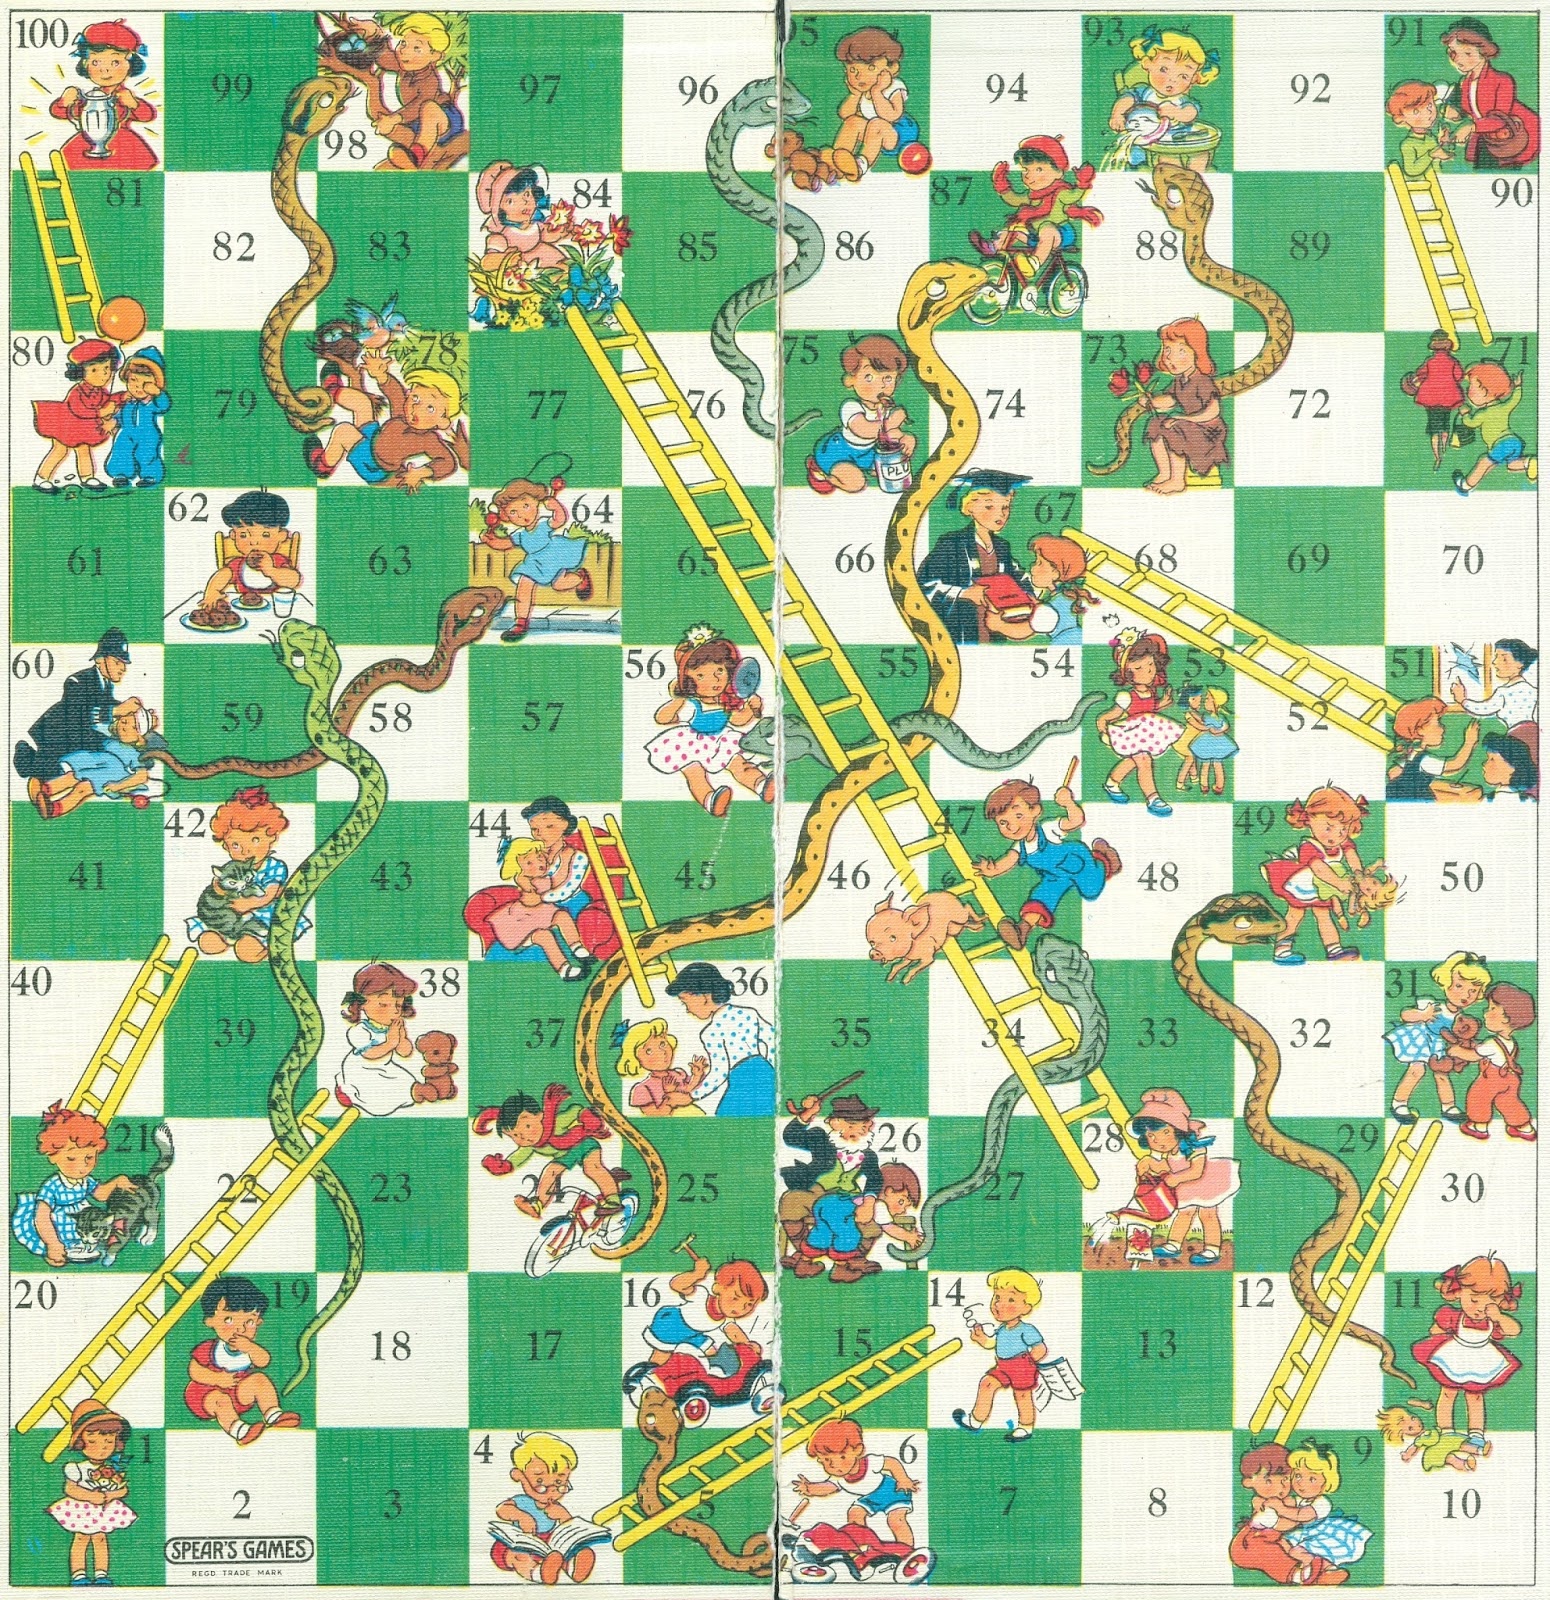 1550 x 1600 jpeg 960kB, Snakes and ladders http://www.pointlessmuseum ...